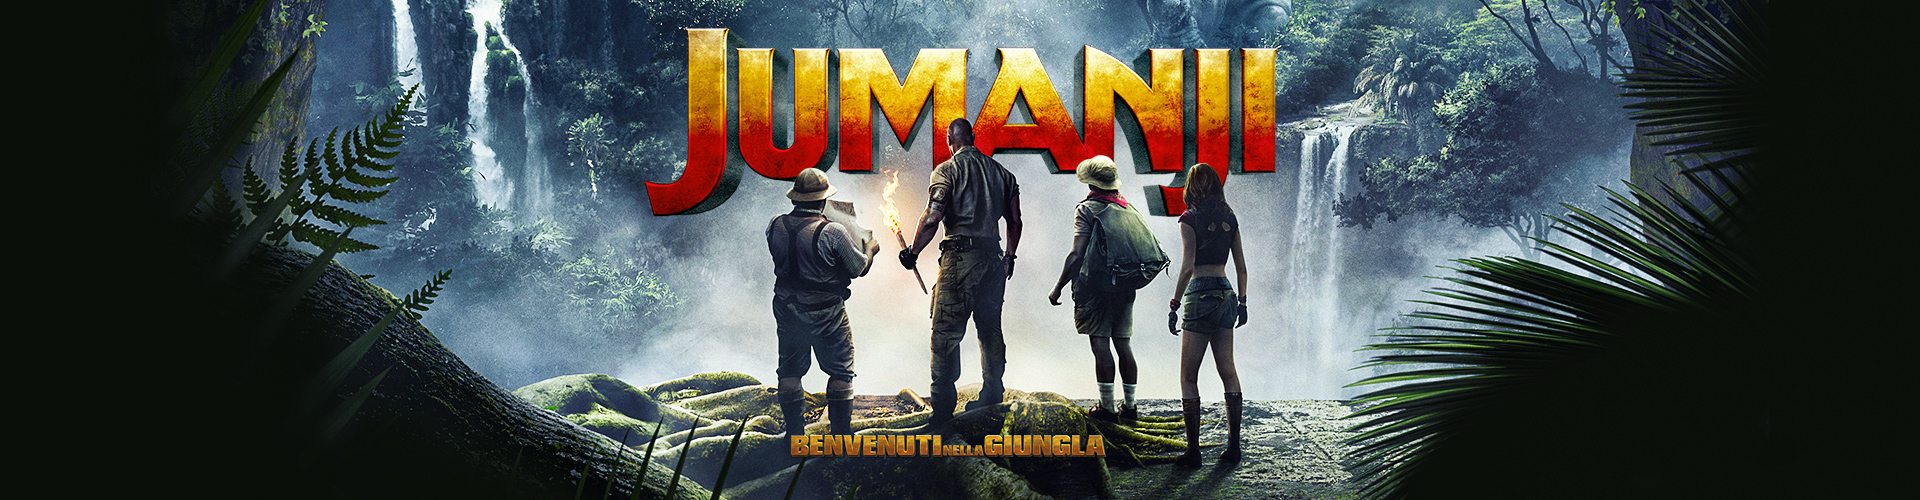 Dvd-it_slider_Jumanji